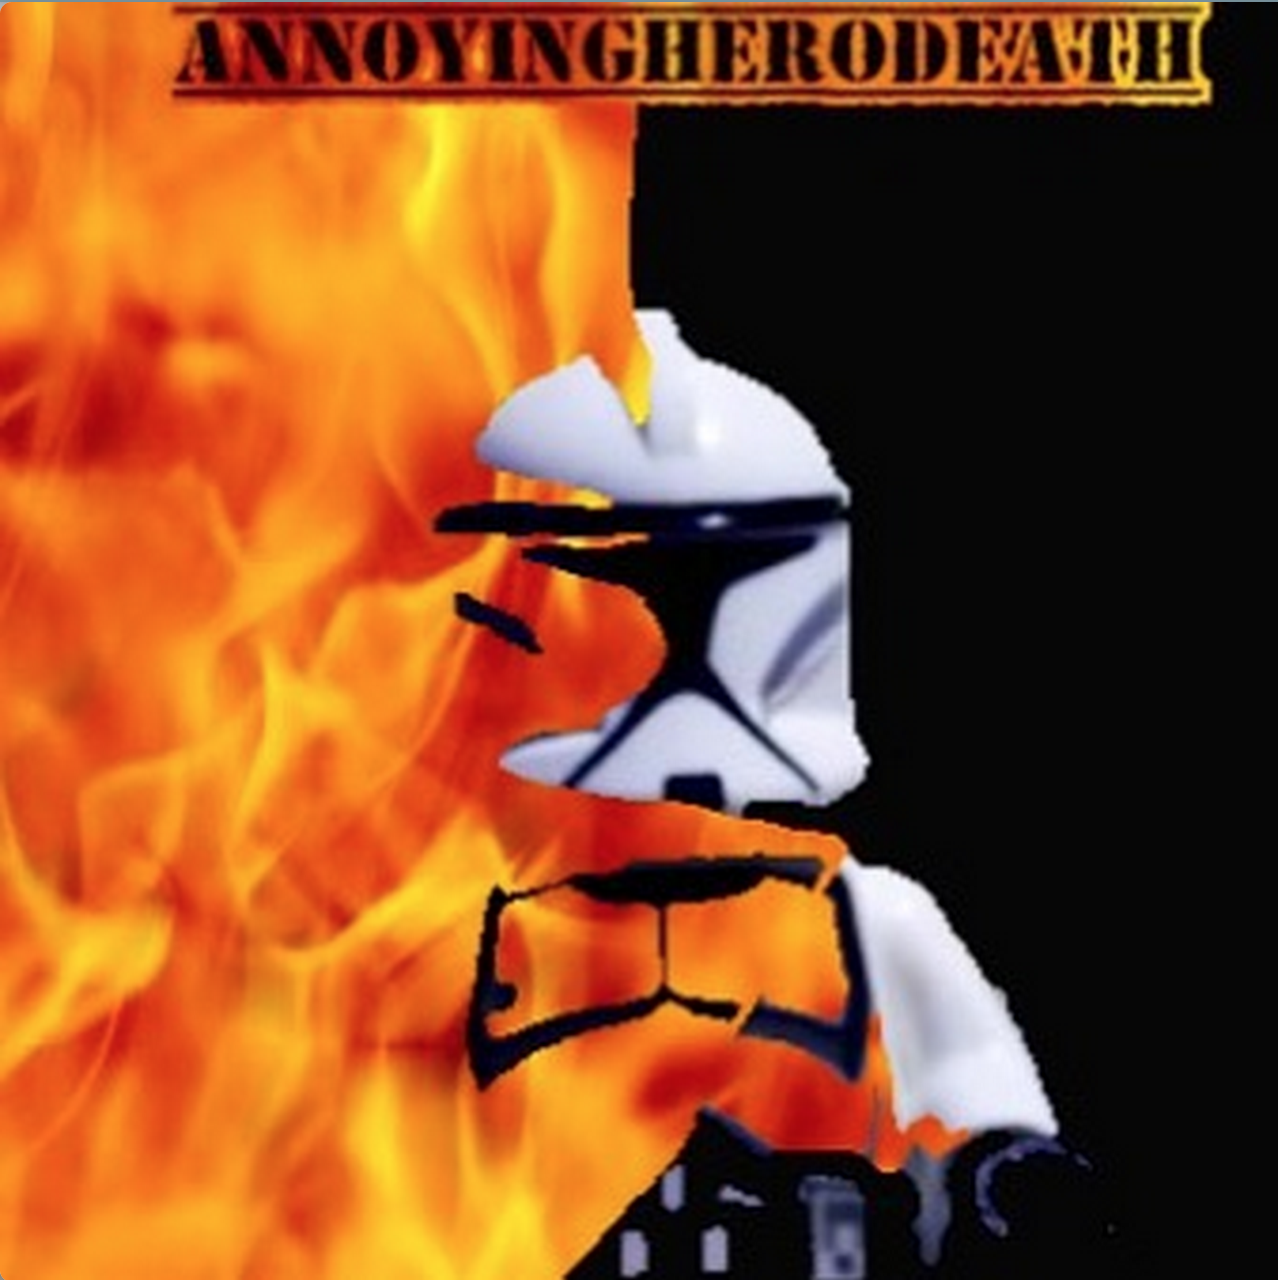 AnnoyingHeroDeath.tribute